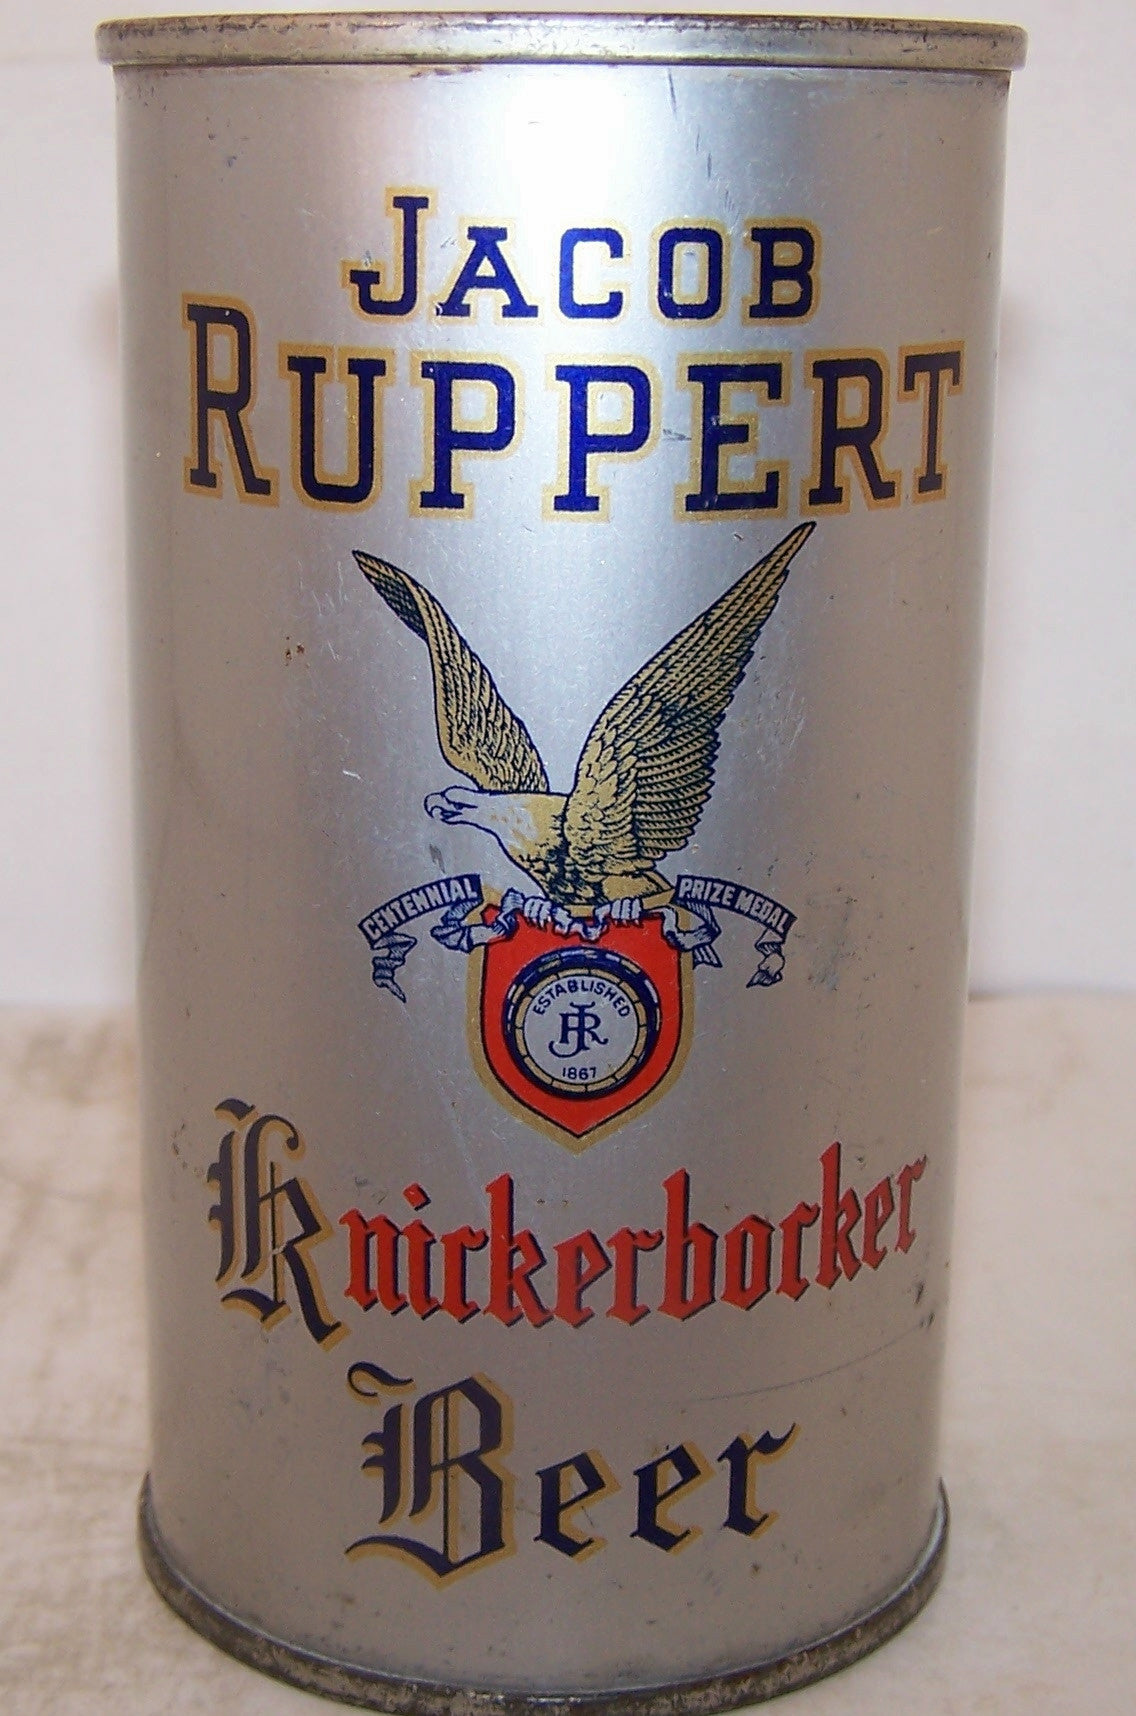 Jacob Ruppert Knickerbocker beer, USBC 126-1, Grade 1/1- Sold 4/1/15